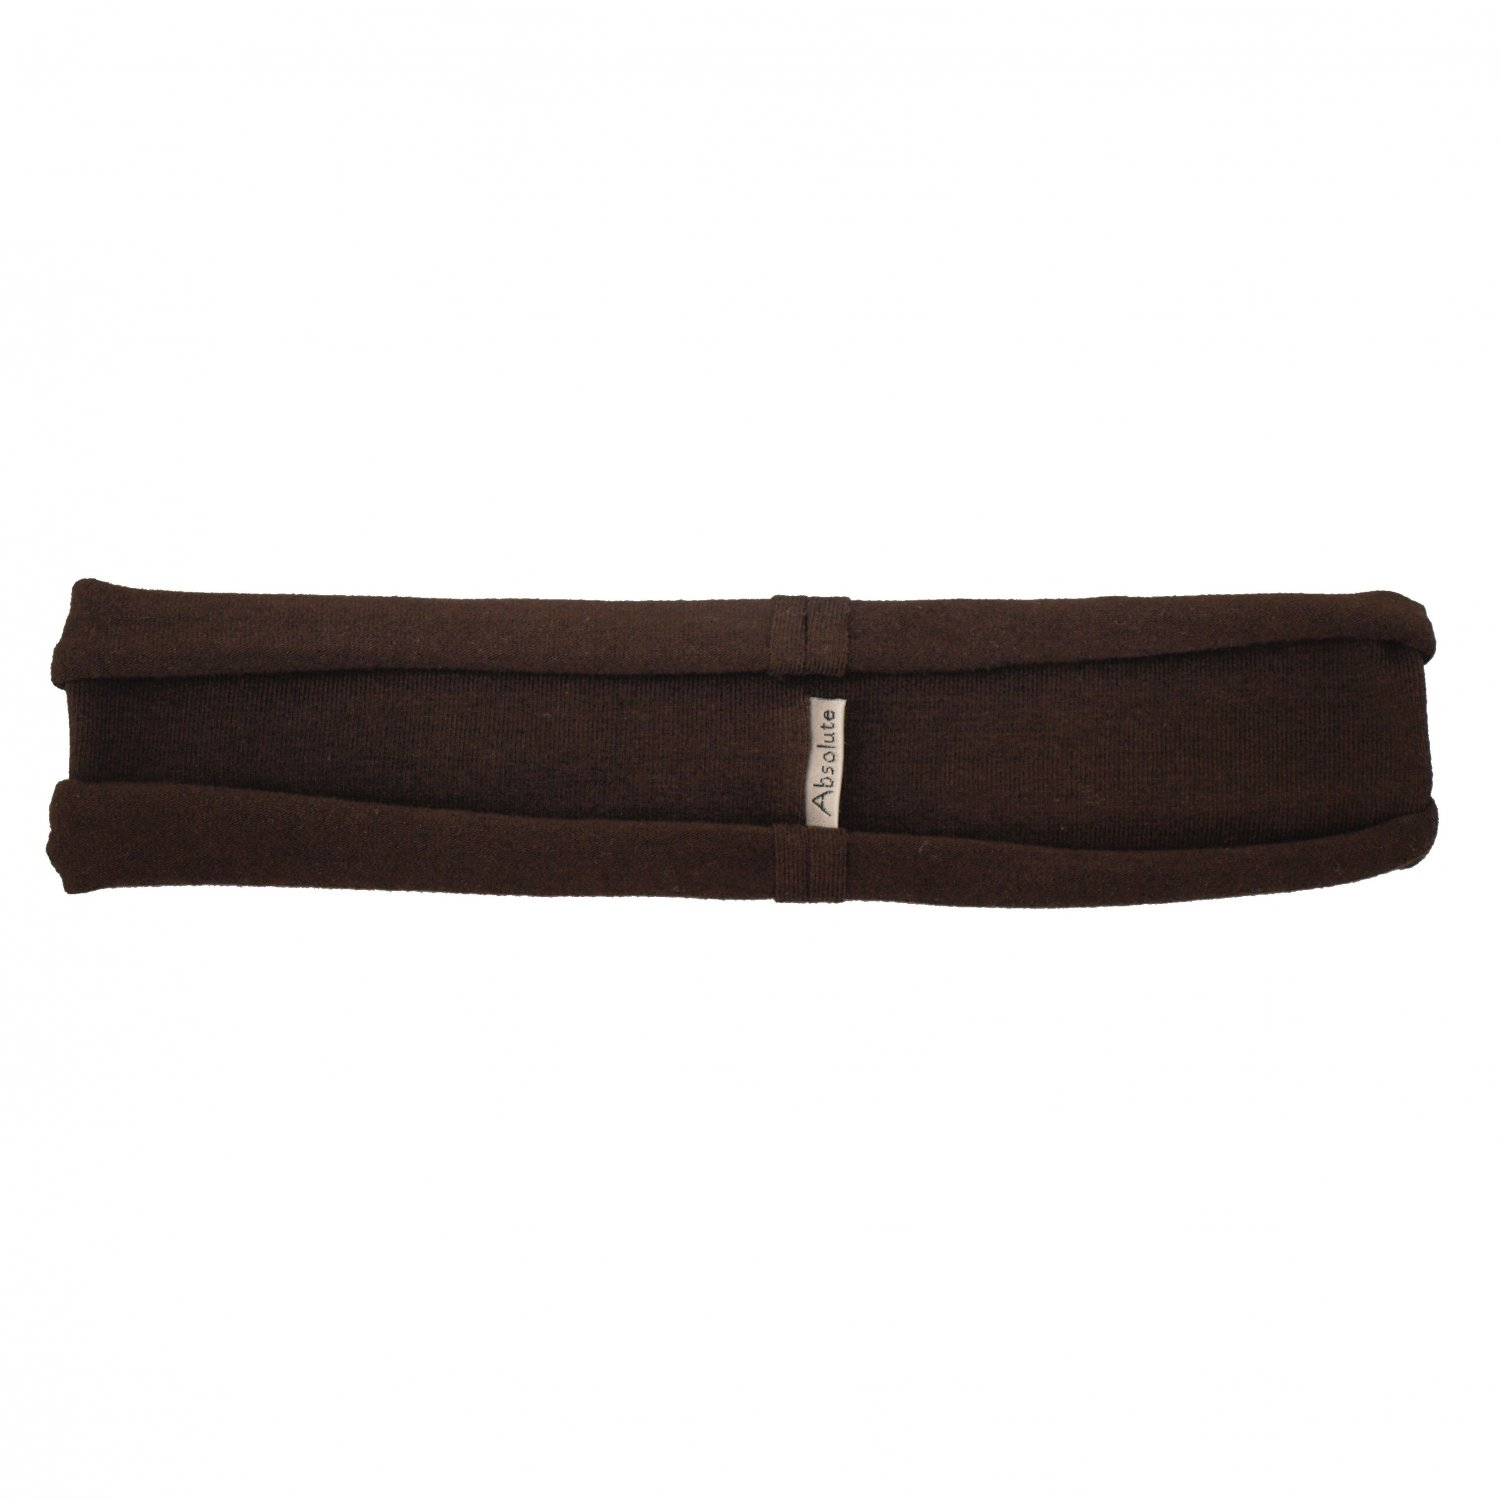 Dark Brown stretchy hBand - cotton/lycra headband for yoga, pilates, exercise, sports, sweatband